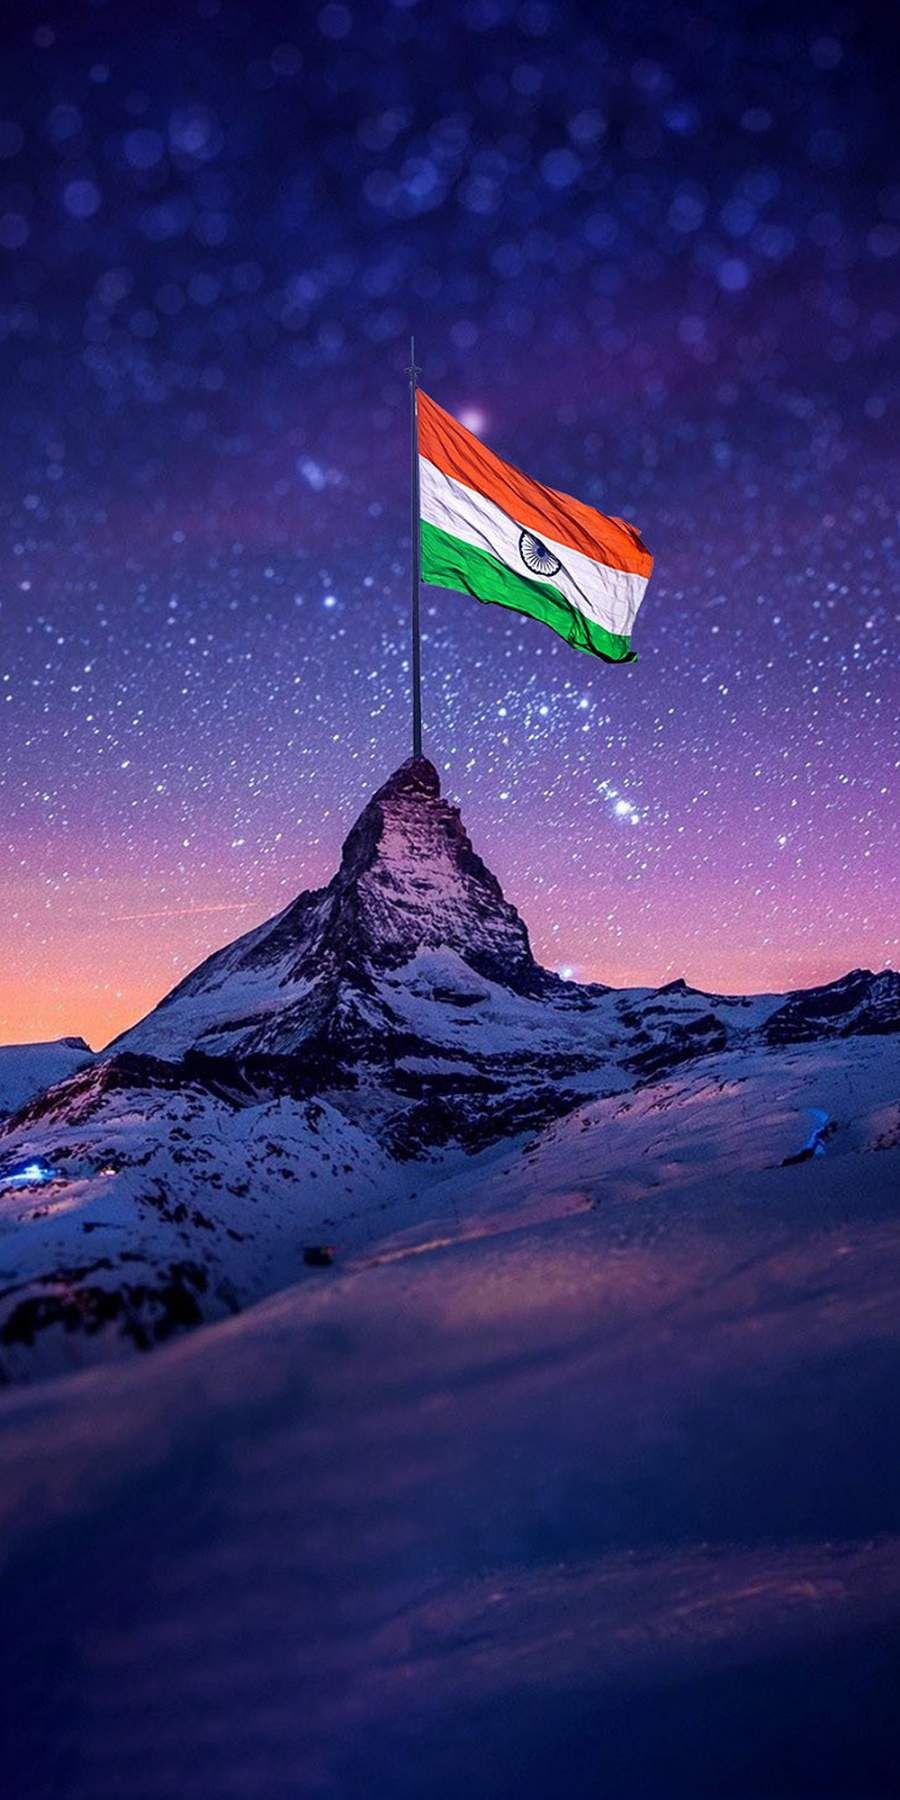 Indian Flag Mountain Iphone Wallpaper Hd Wallpapers For Mobile